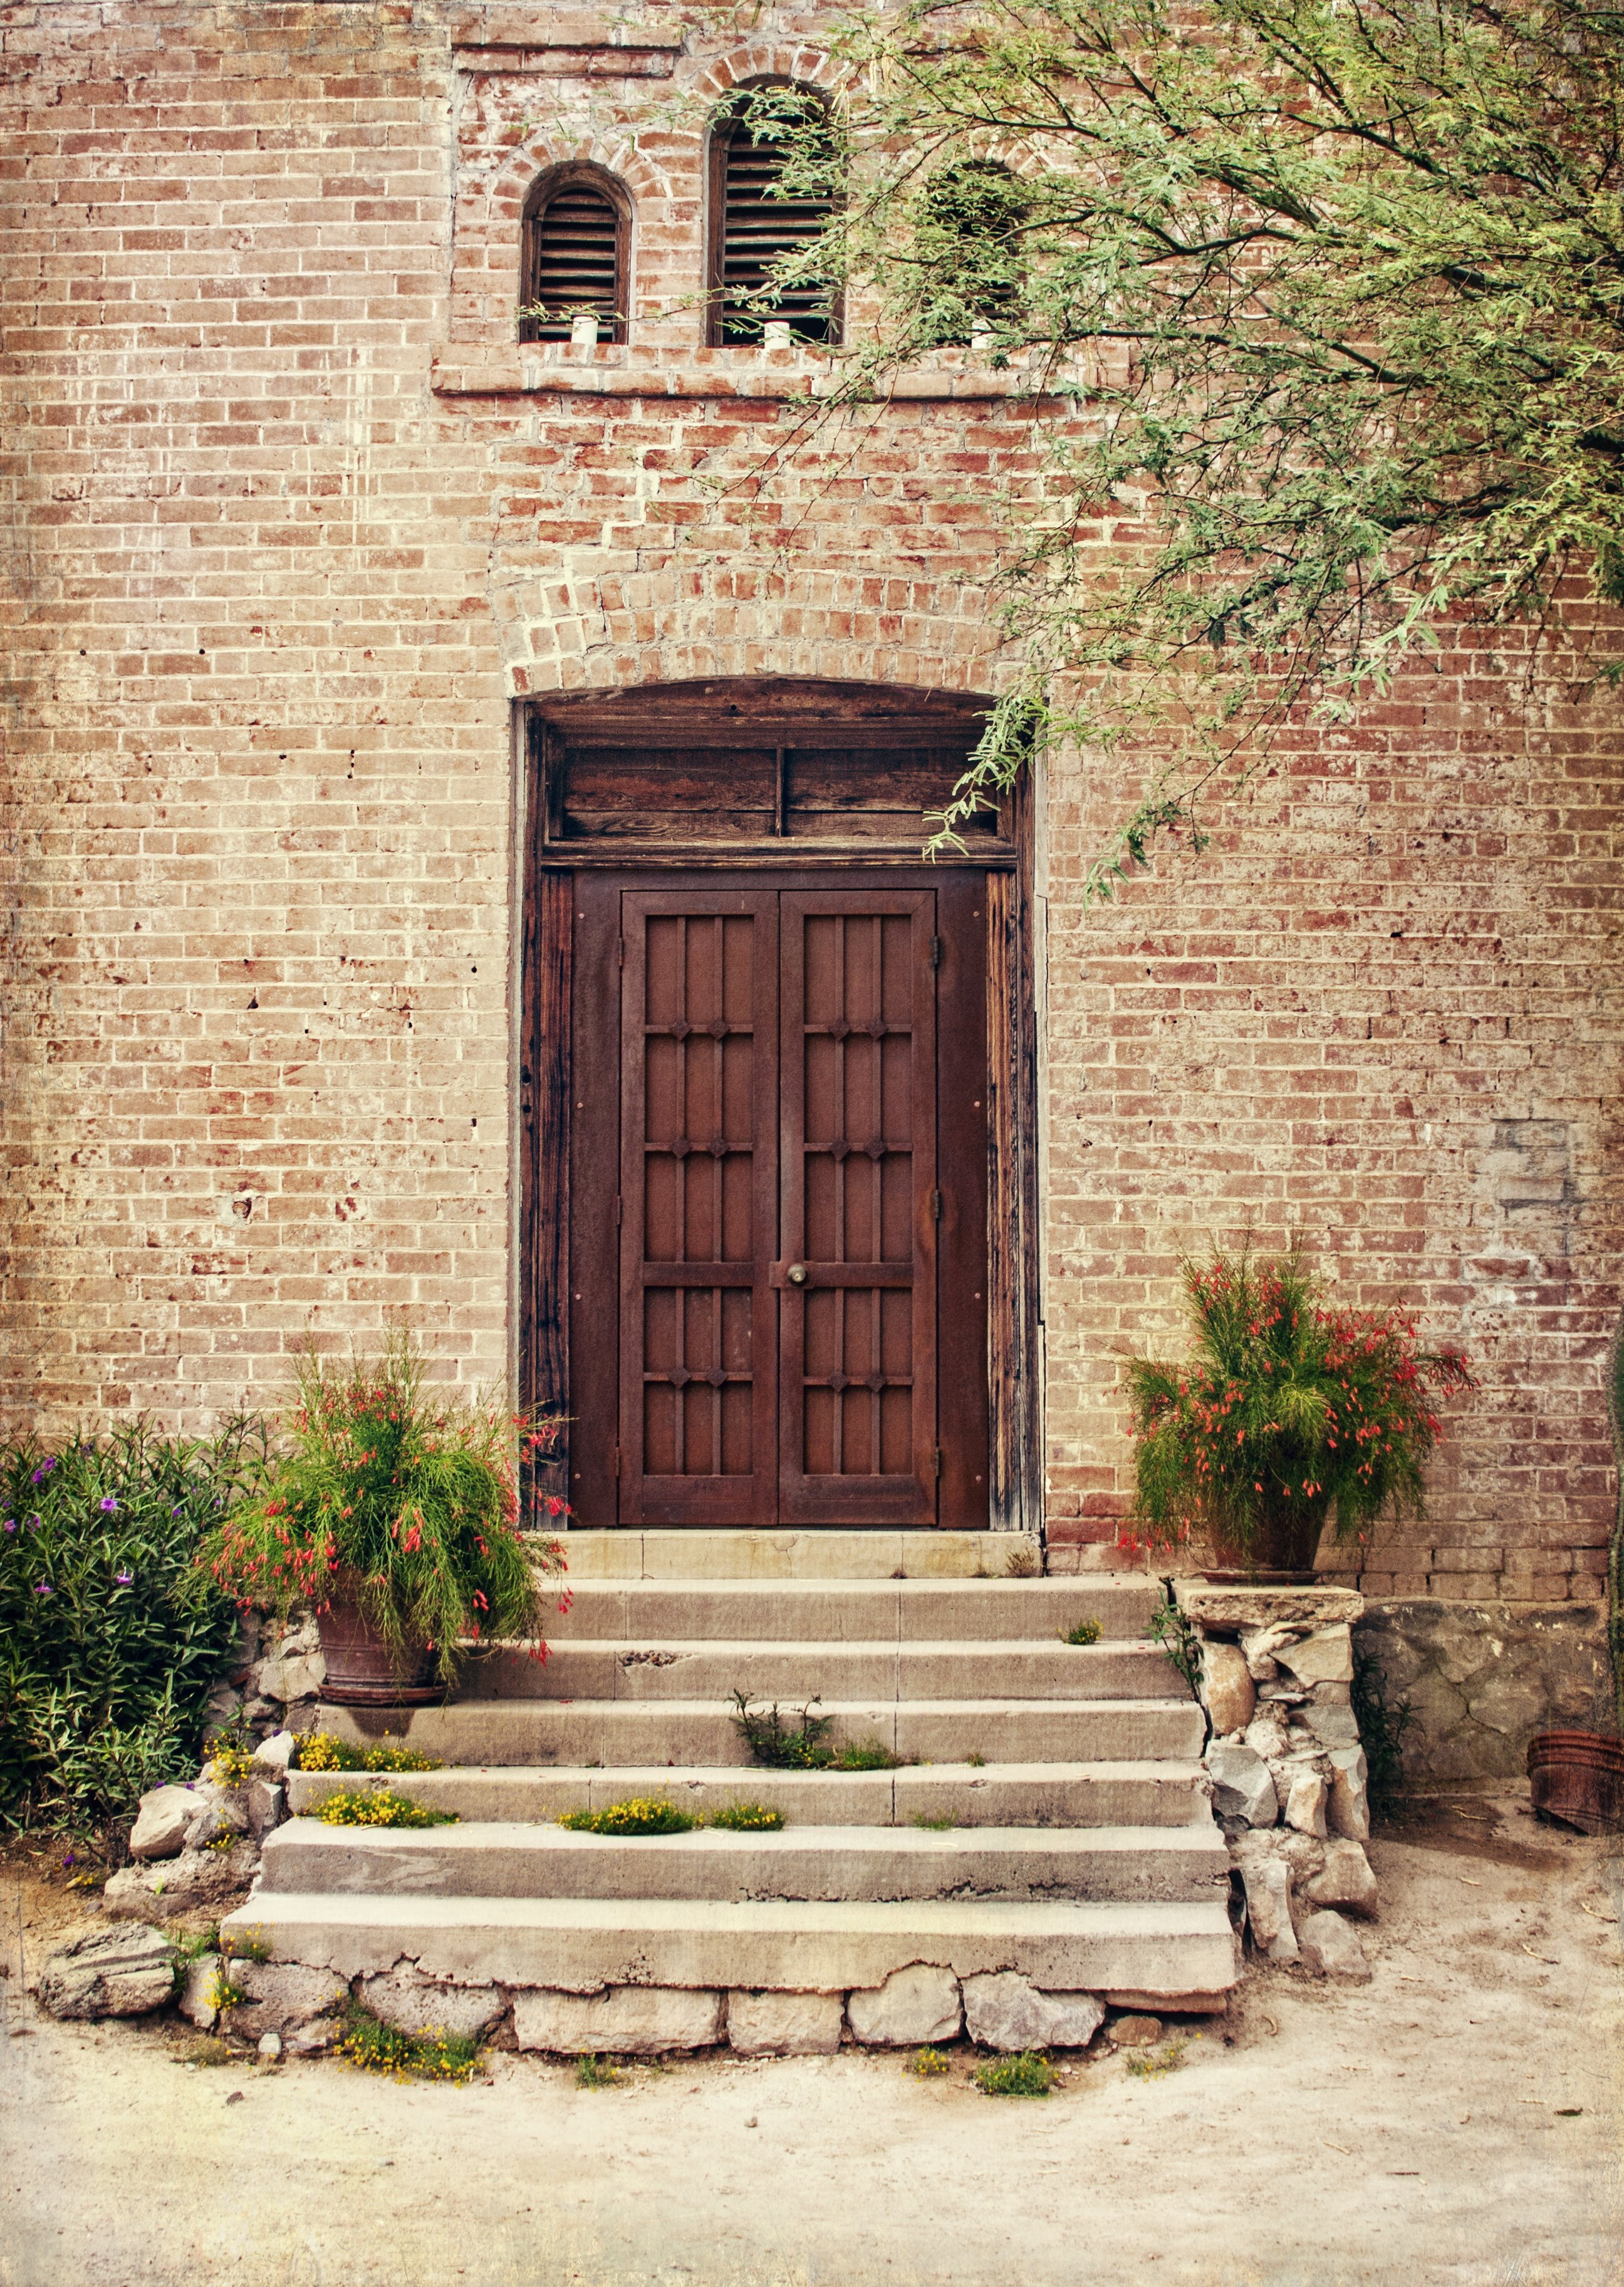 doors, Tucson, barrio, architecture, welcome, entry way